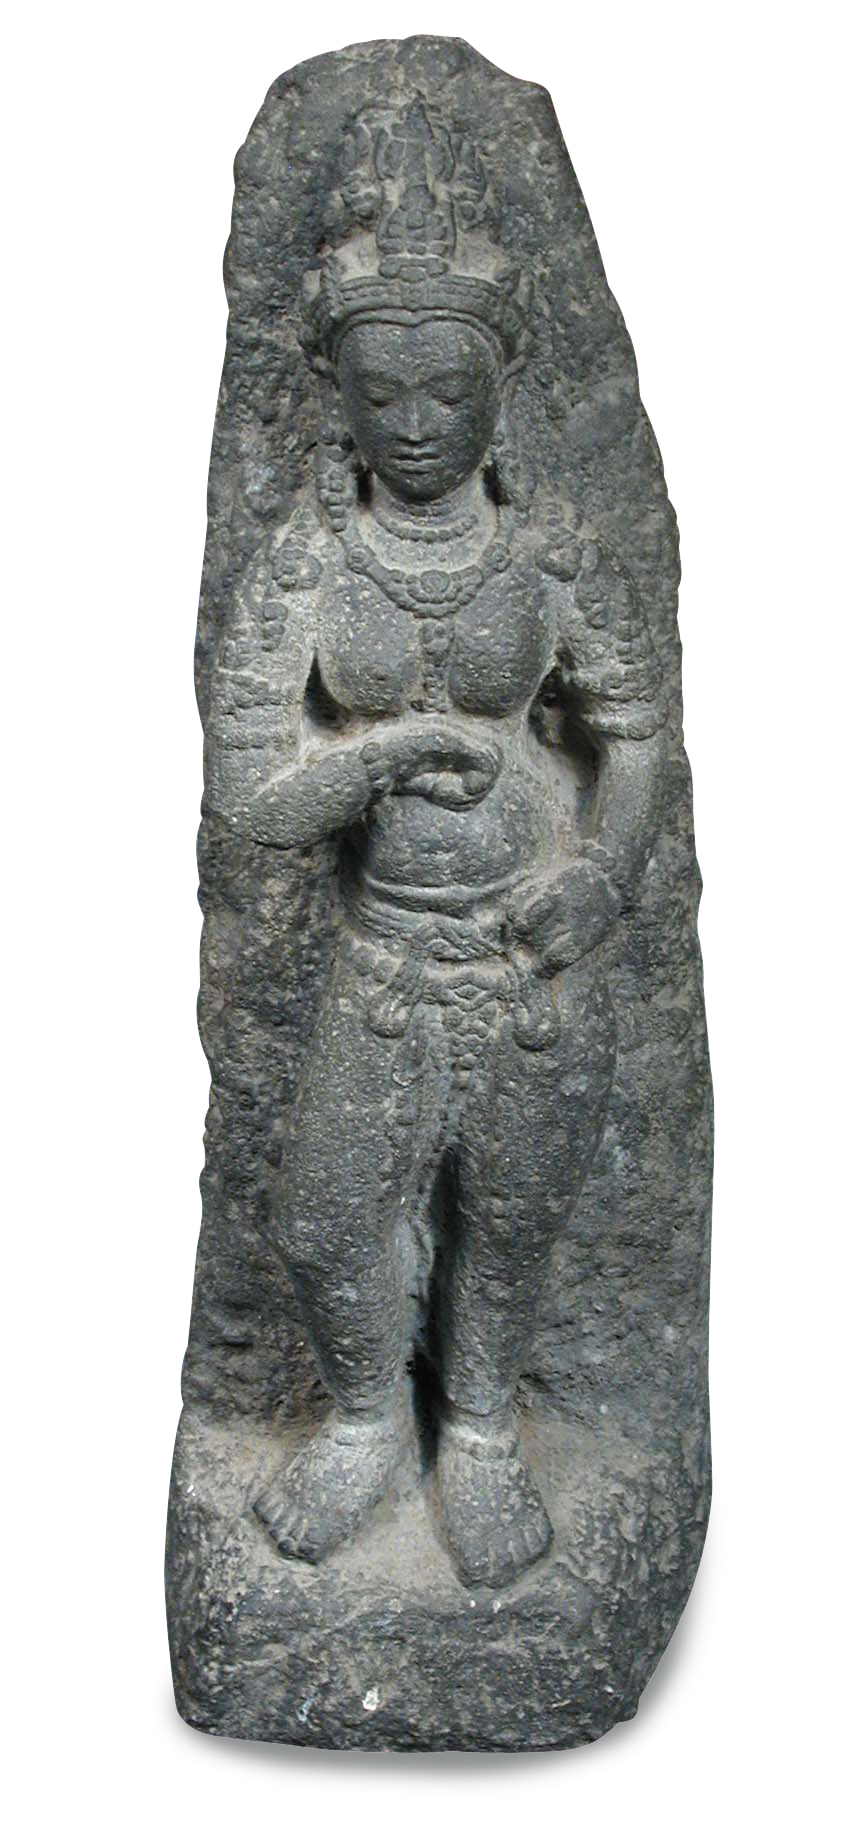 Lot 619 - A Gandharan schist goddess, possibly Hariti and 2nd-3rd century AD, she stands draped only in